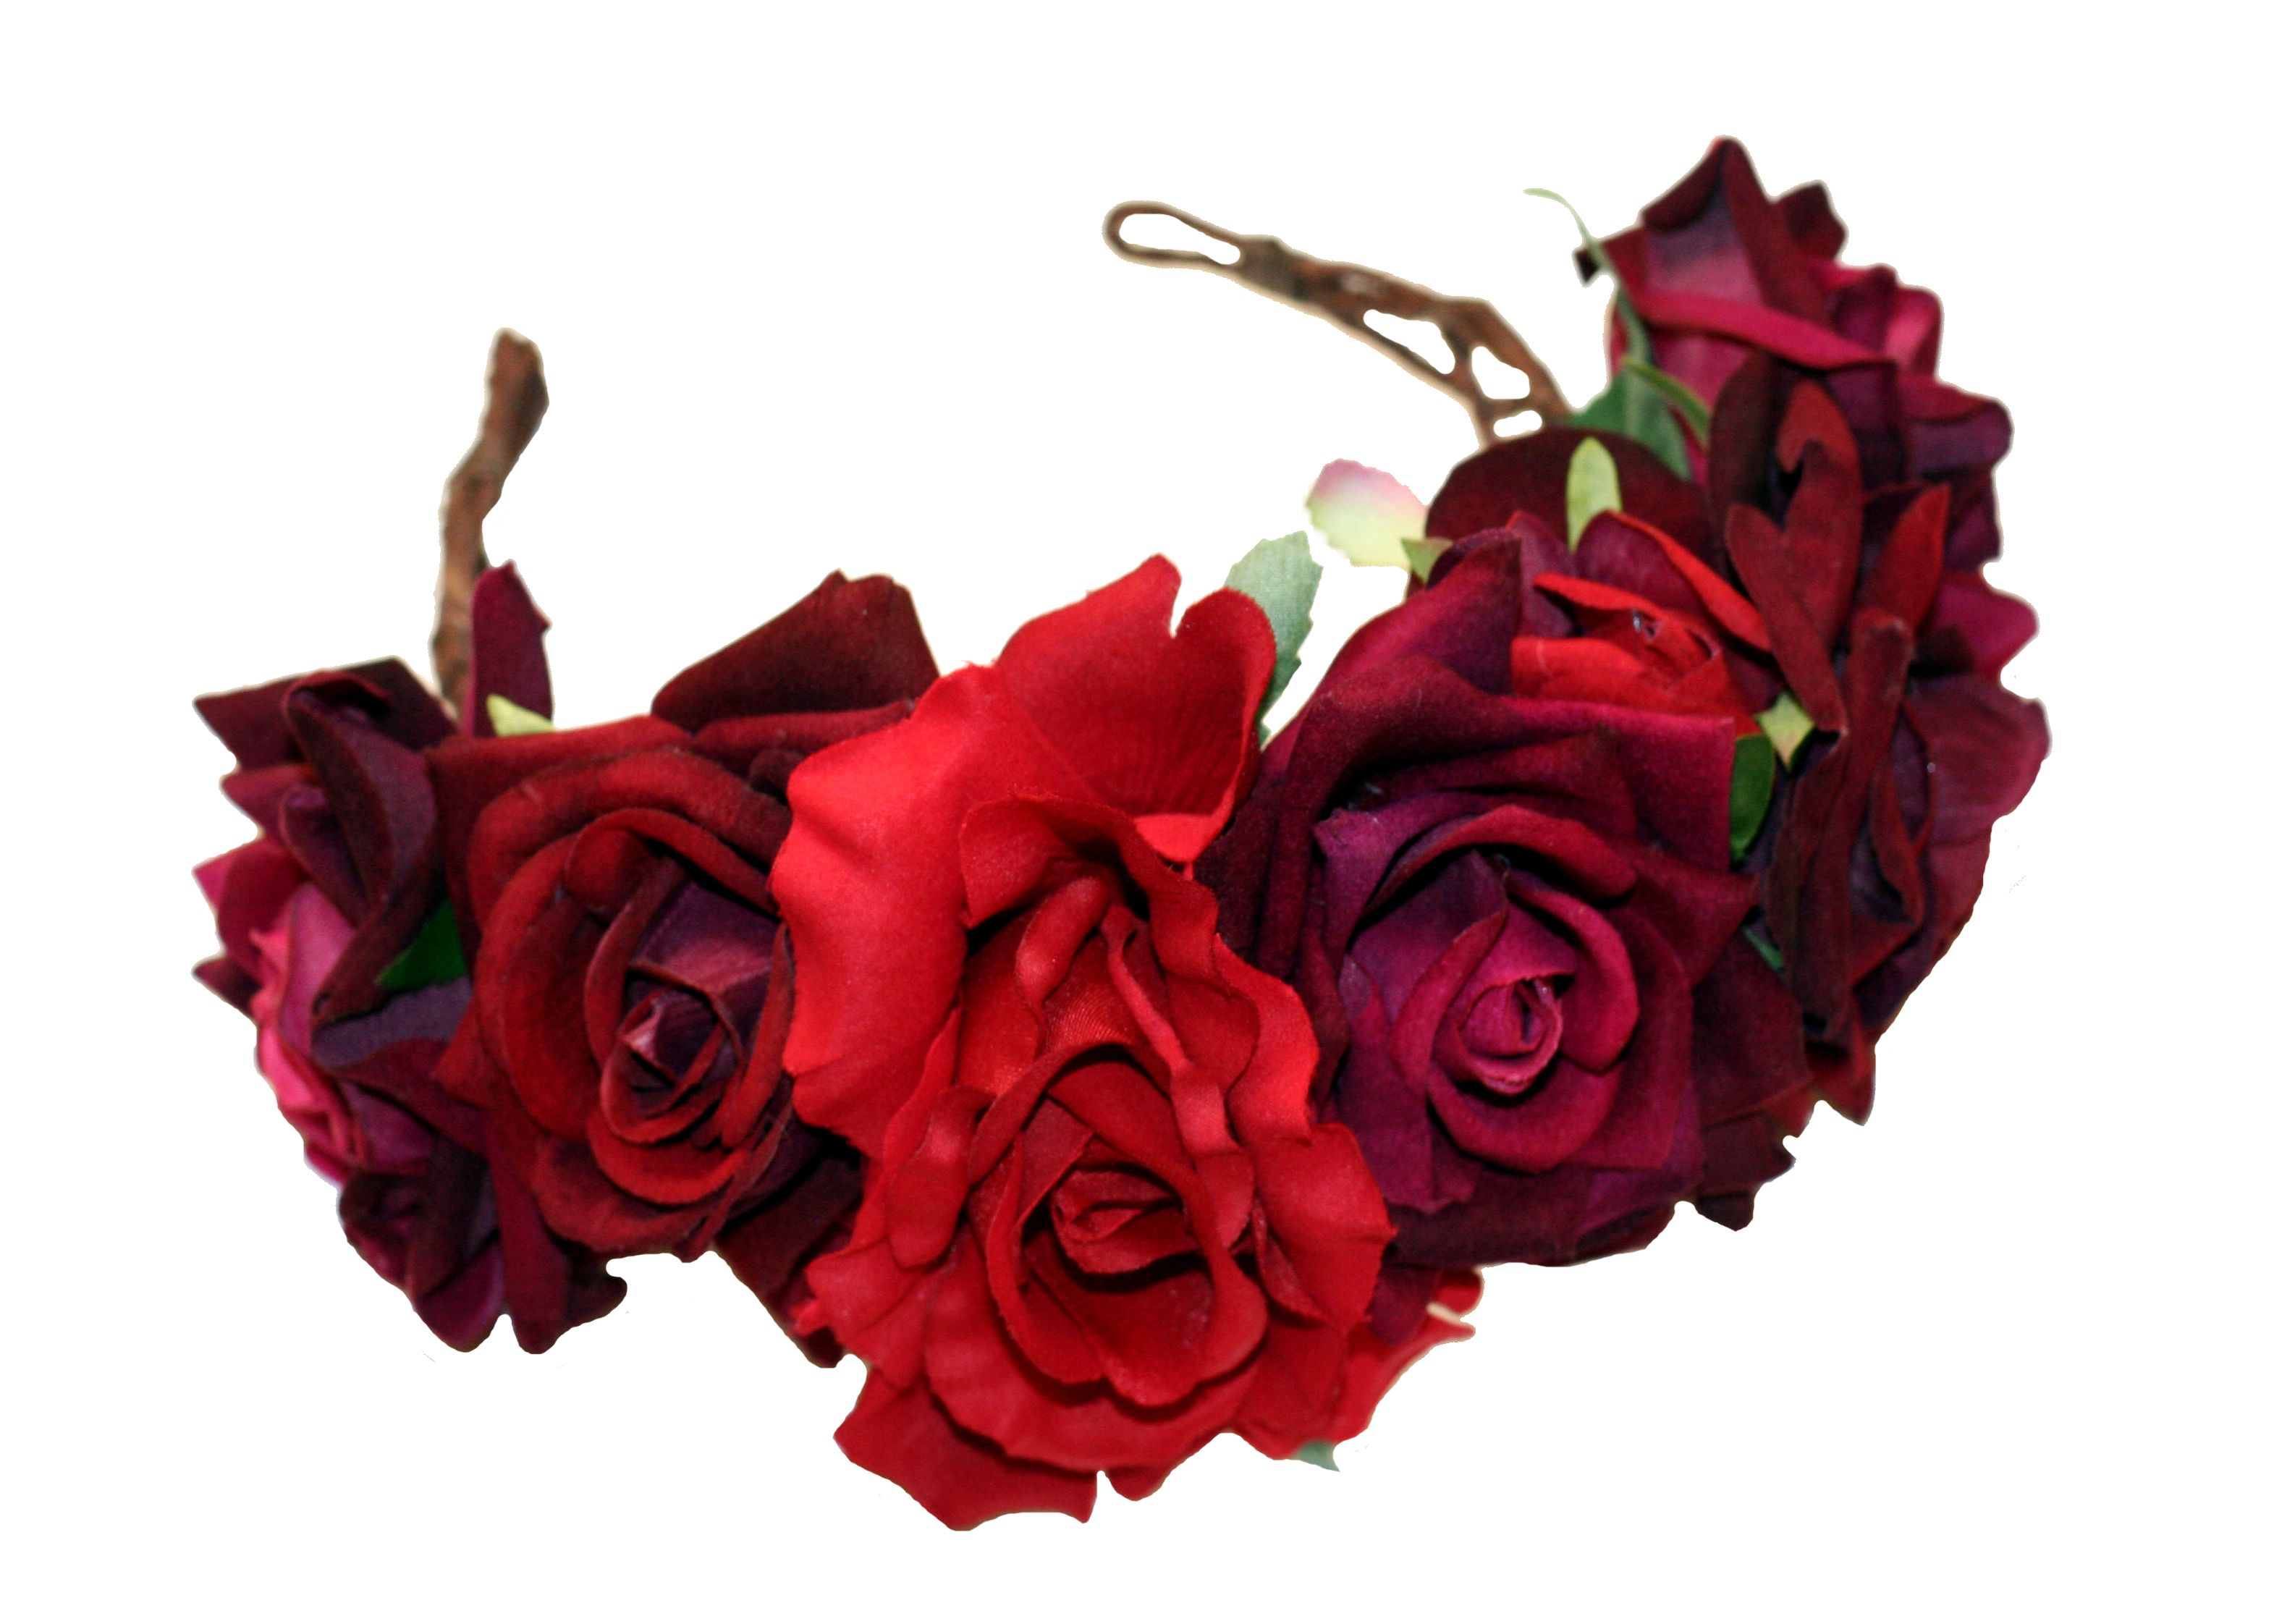 Divine rose crown, http://www.rosesandclementines.com/shop/#!/~/product/category=5340203&id=32021169 #flowercrown #floralcrown #rosecrown #flowergarland #floralheadwear #redrose